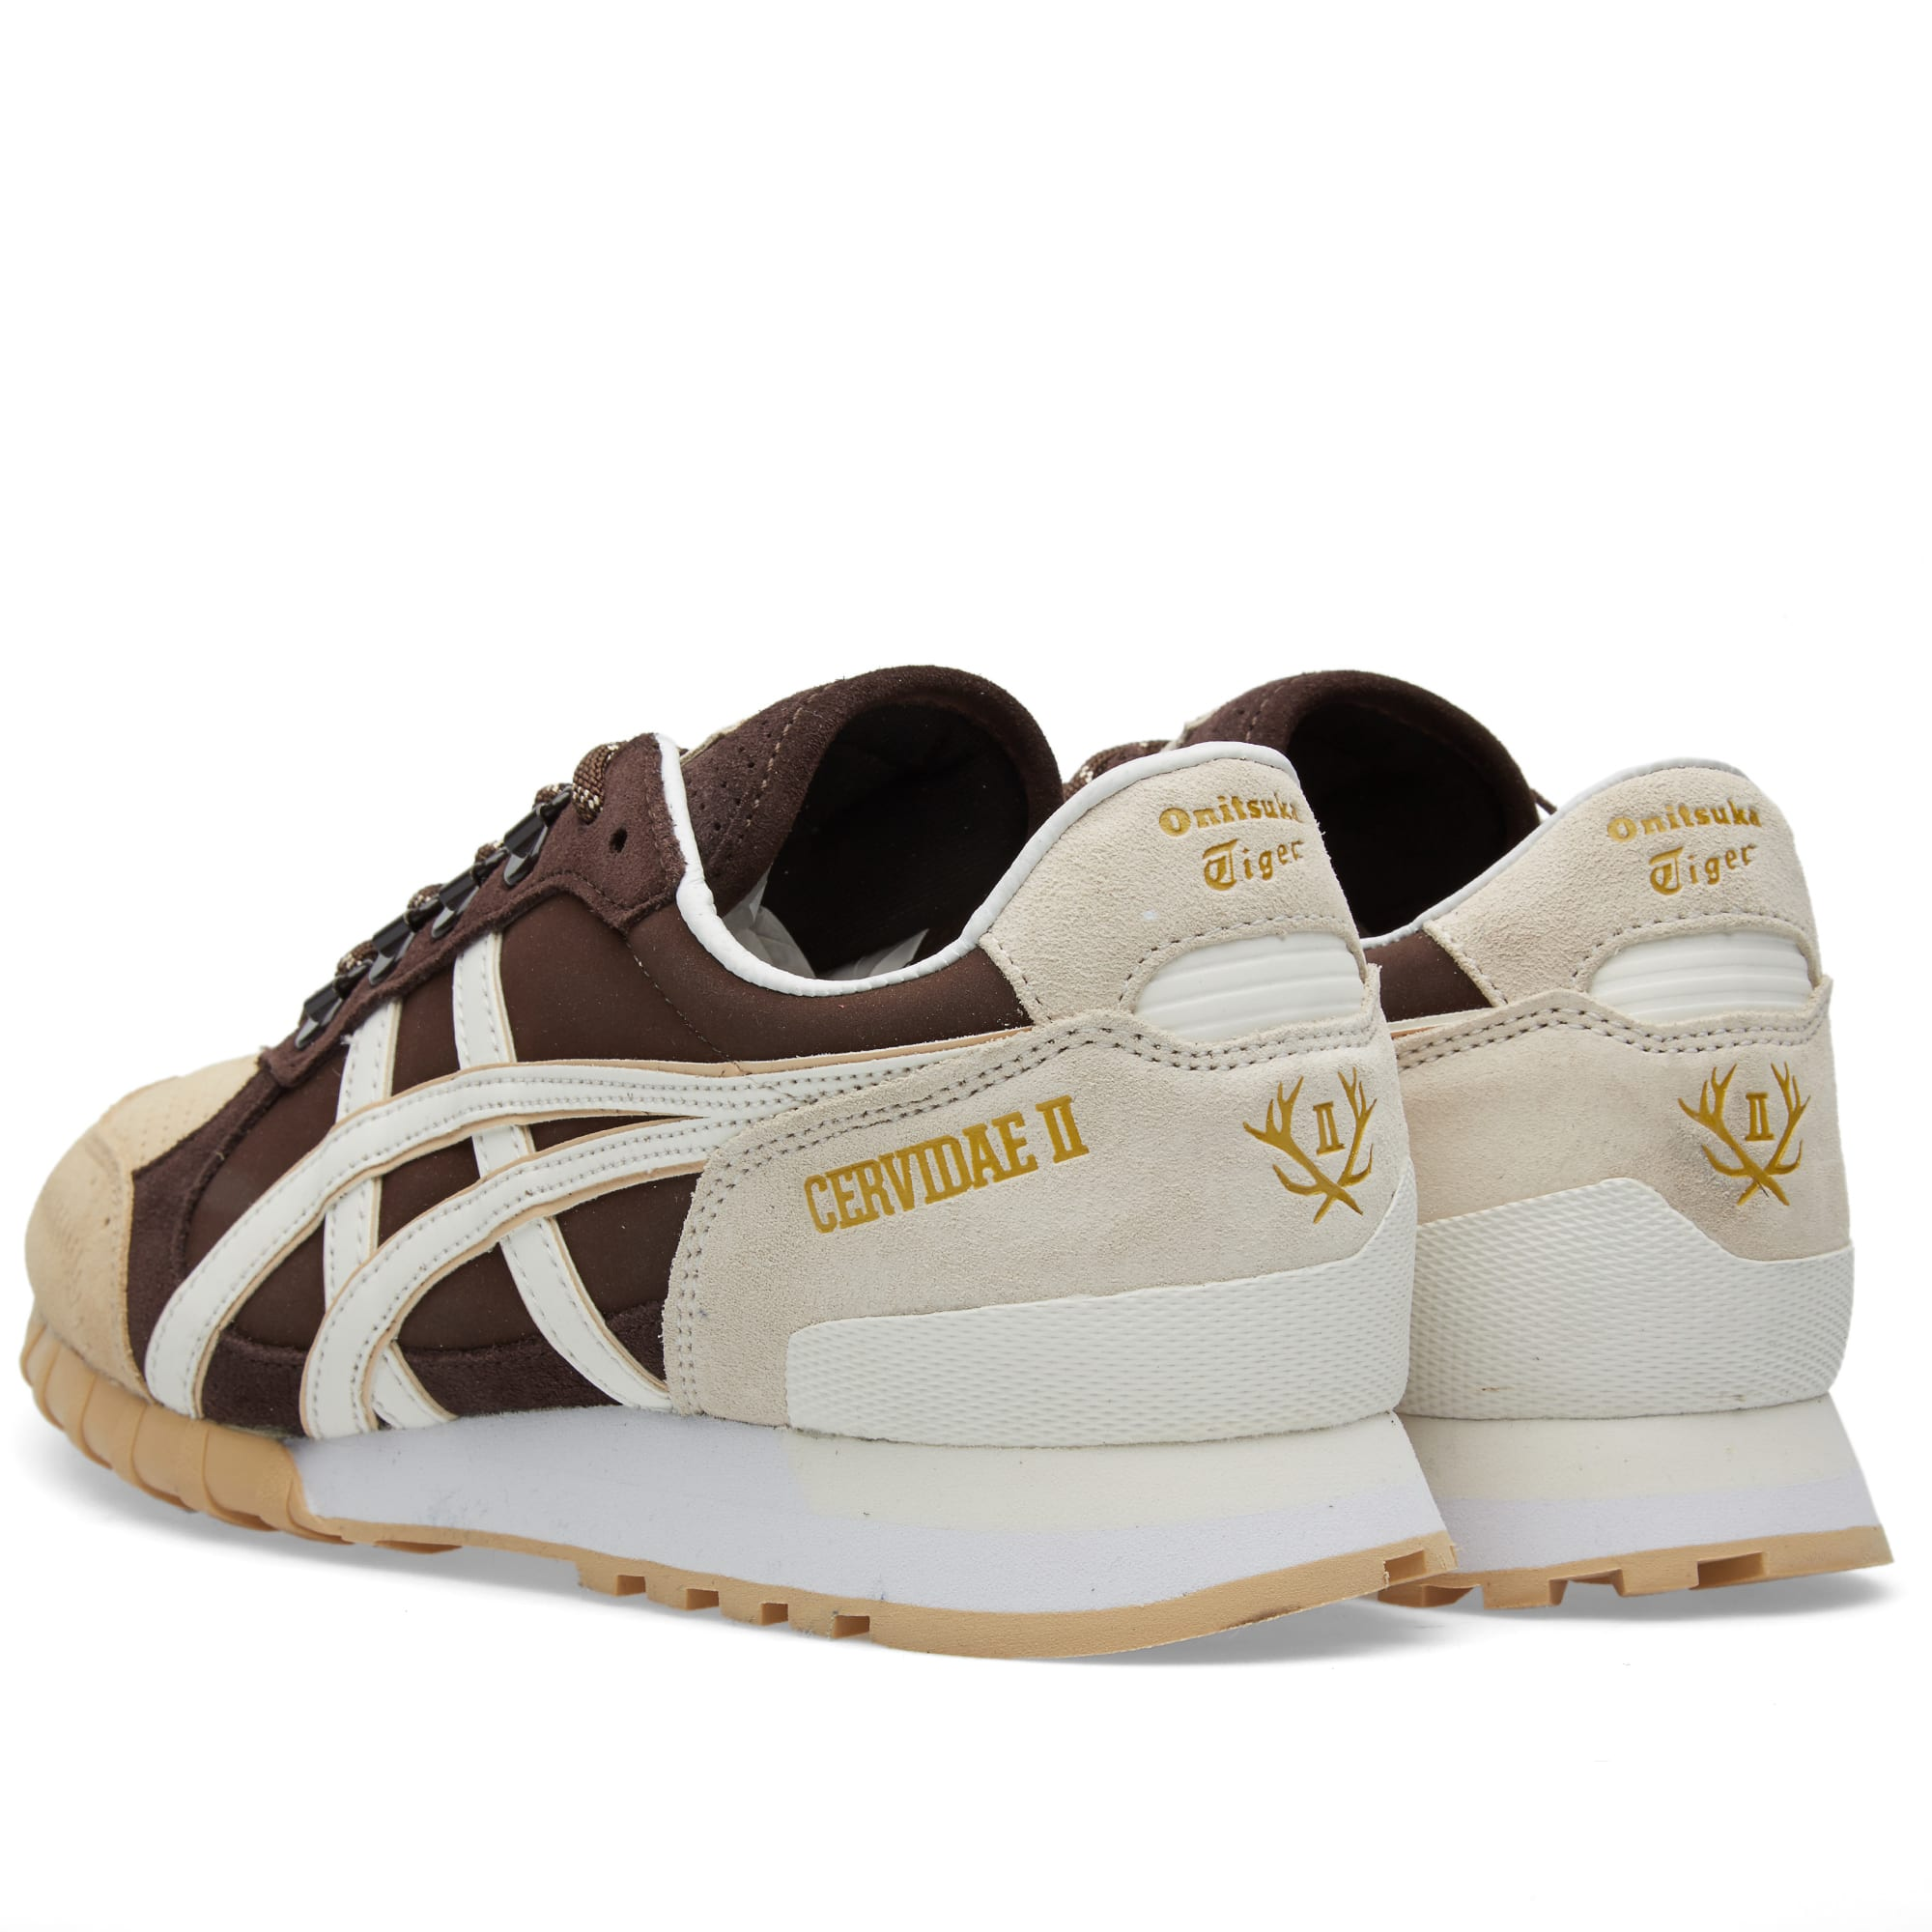 new product 731be a42c3 Onitsuka Tiger x WOEI Colorado 85 'Cervidae II'